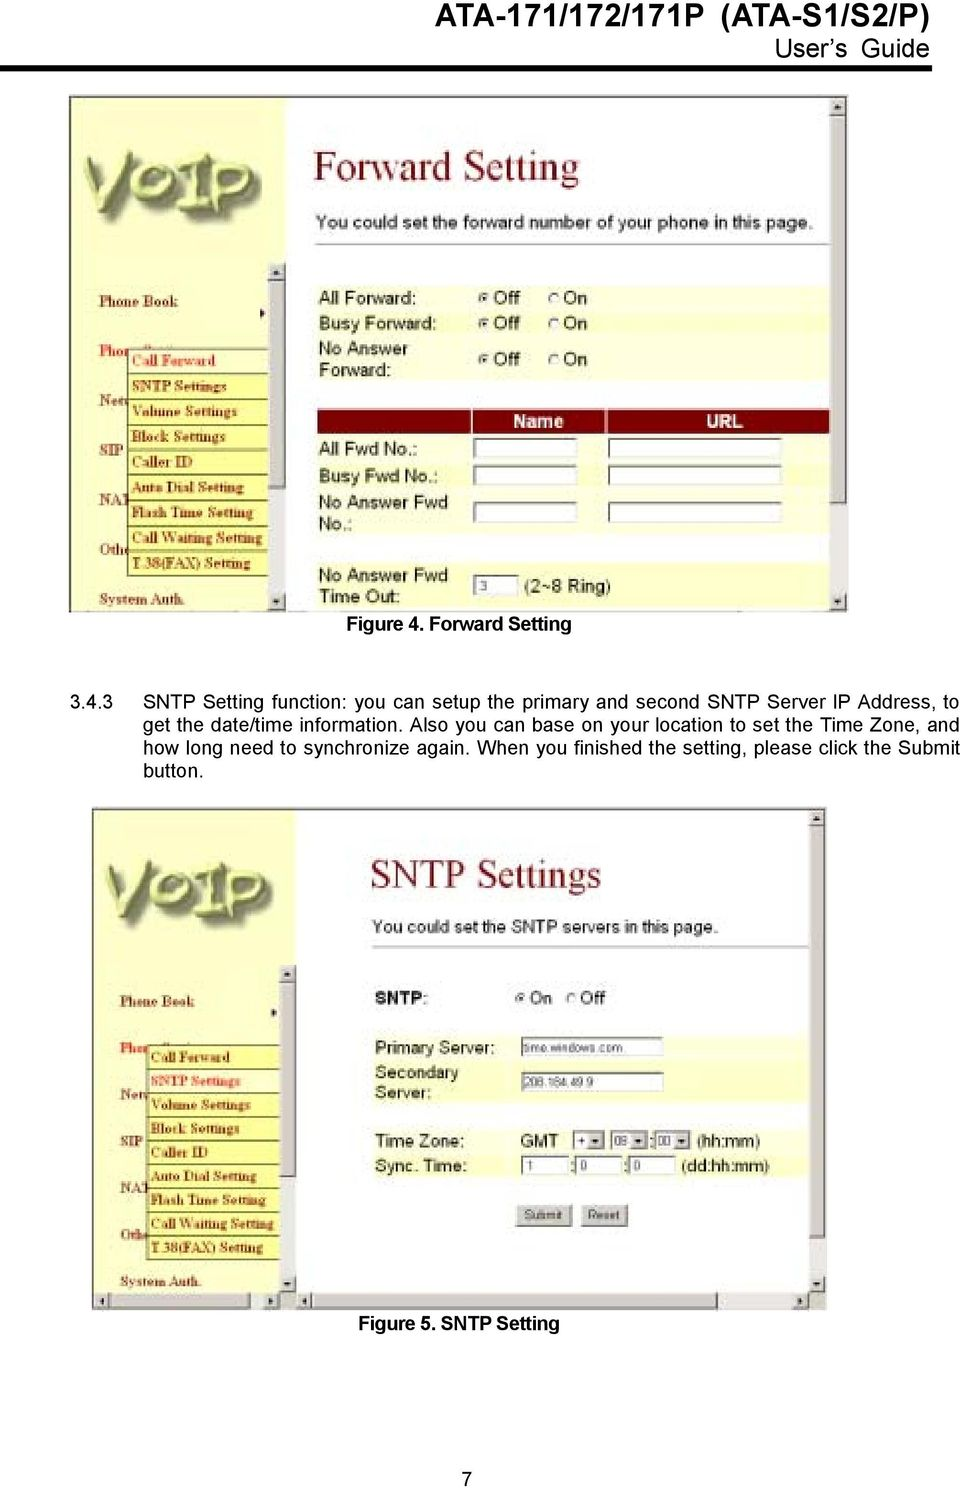 3 SNTP Setting function: you can setup the primary and second SNTP Server IP